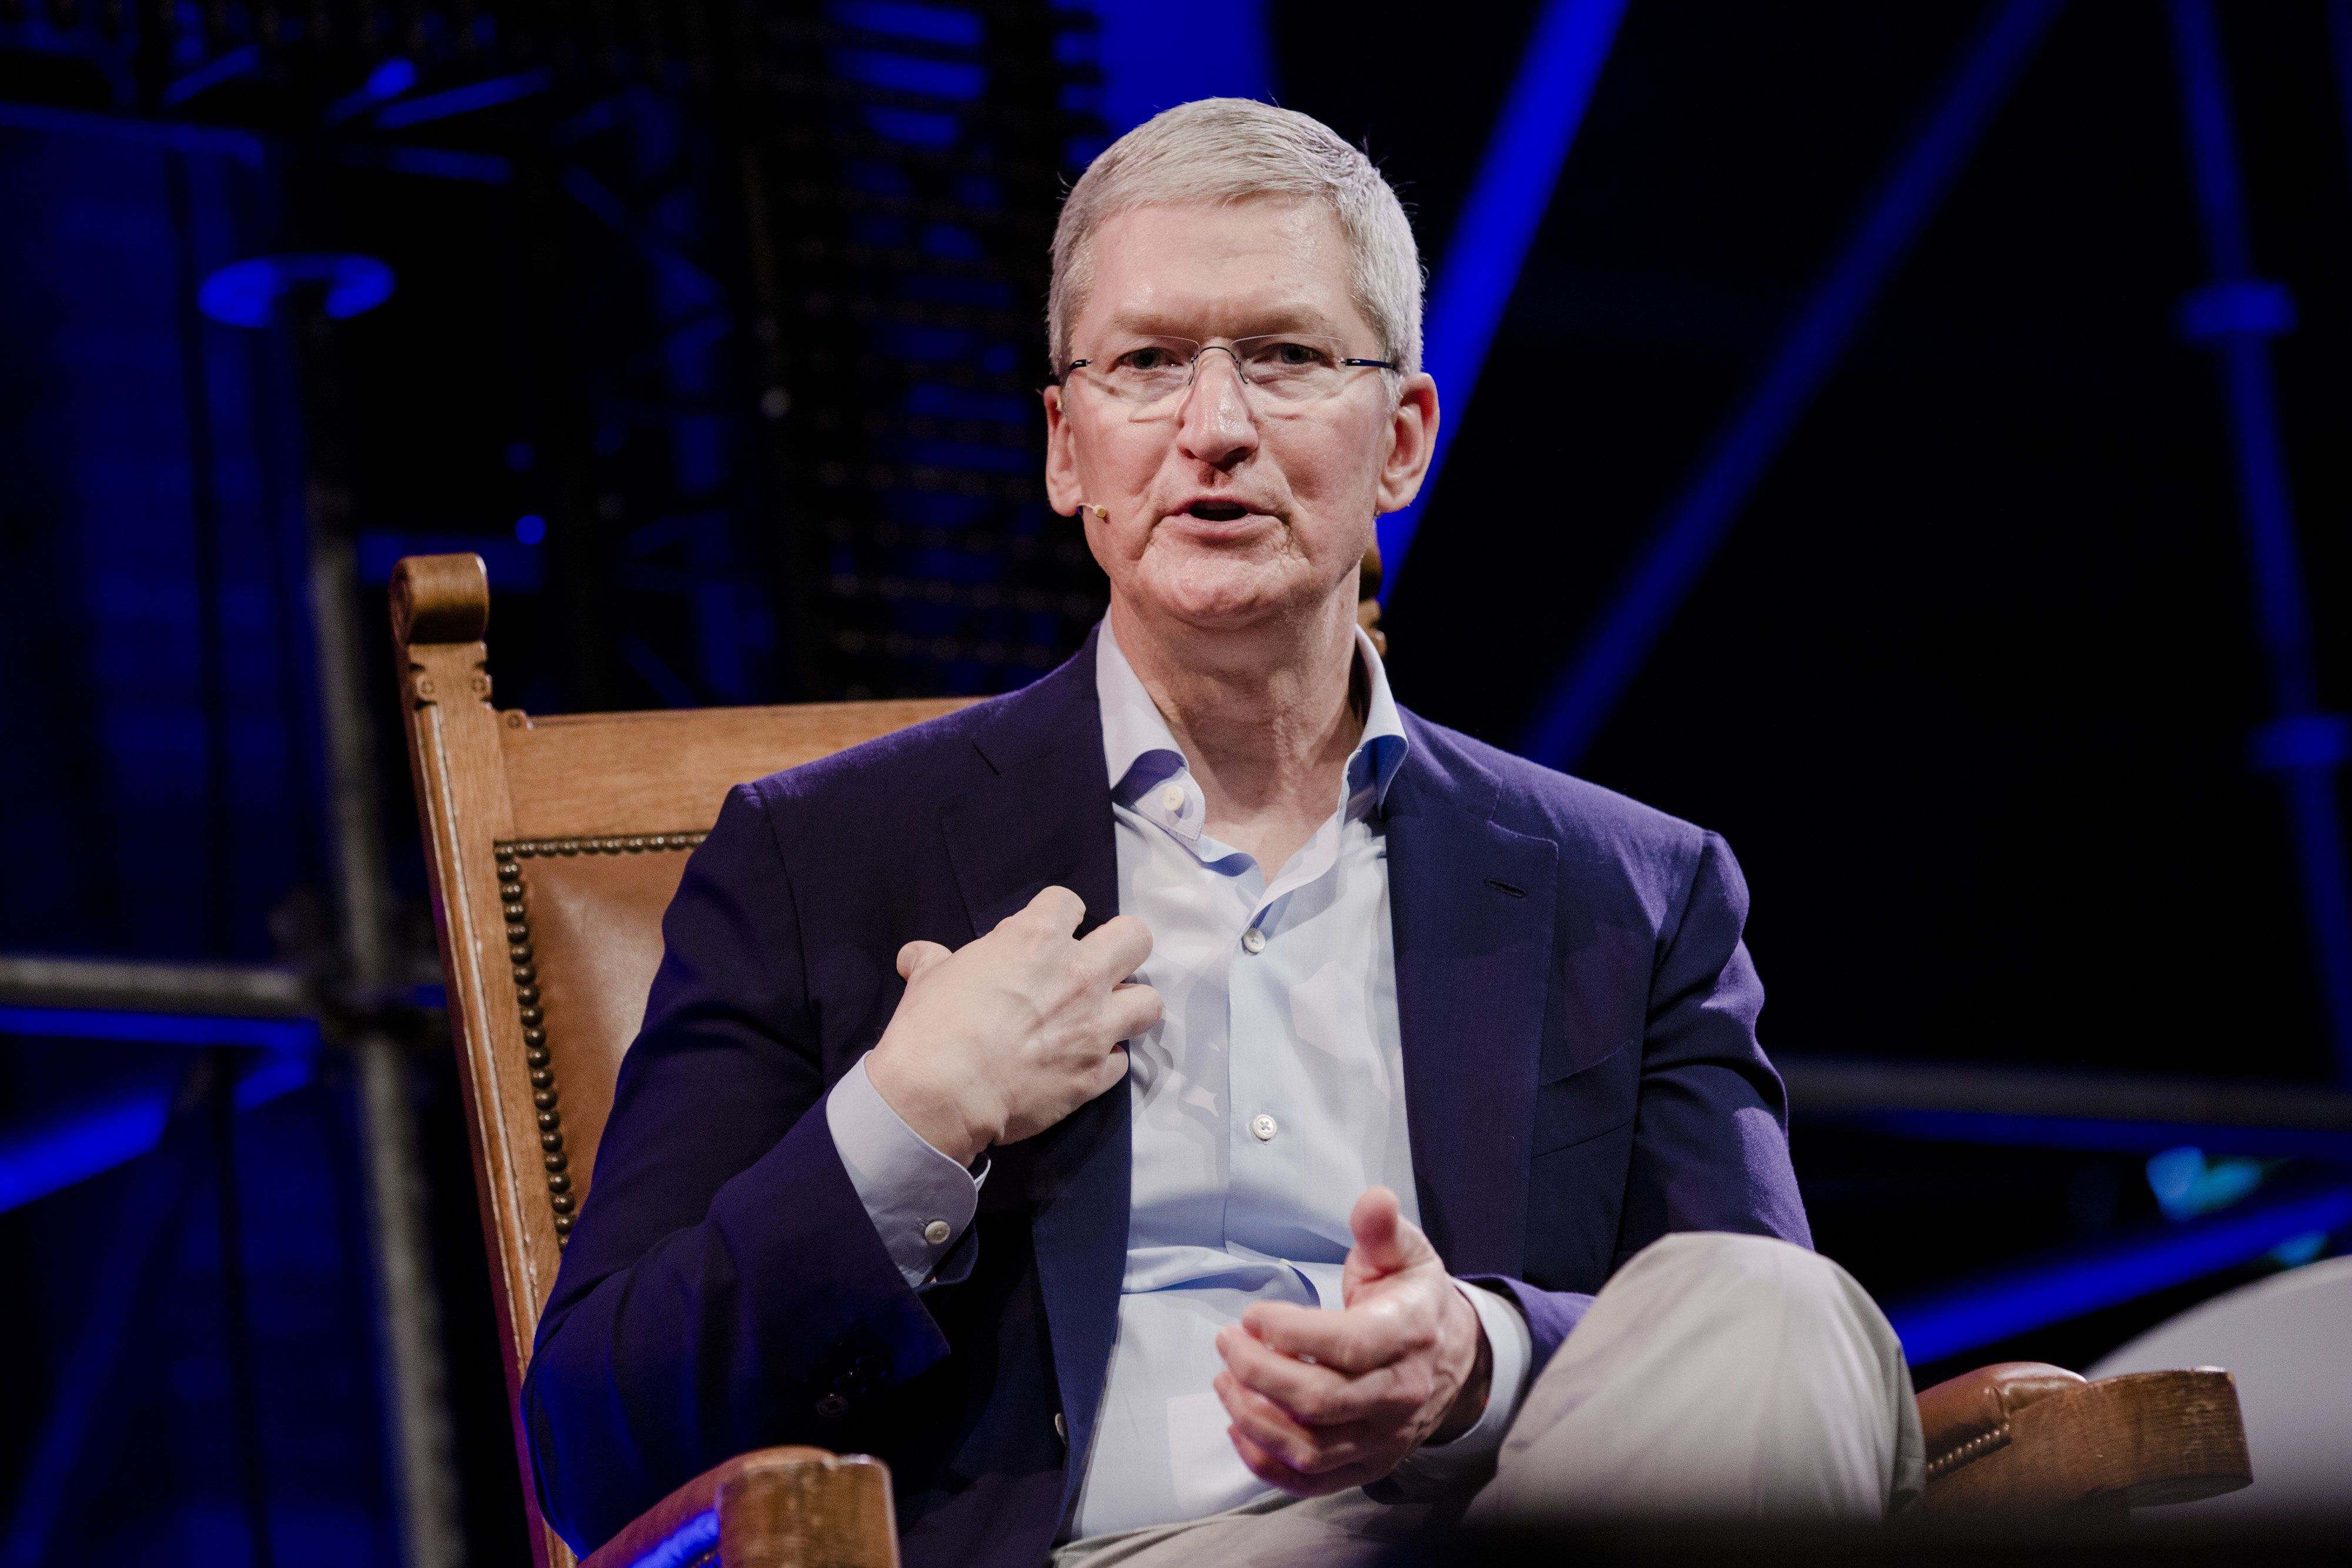 Tim Cook, chief executive officer of Apple Inc., speaks during the opening of 'Startup Fest', a five-day conference to showcase Dutch innovation, in Amsterdam, Netherlands, on Tuesday, May 24, 2016. The Digital City Index for 2015 ranked Amsterdam Europe's second-best city, behind London, for tech startups. Photographer: Marlene Awaad/Bloomberg via Getty Images